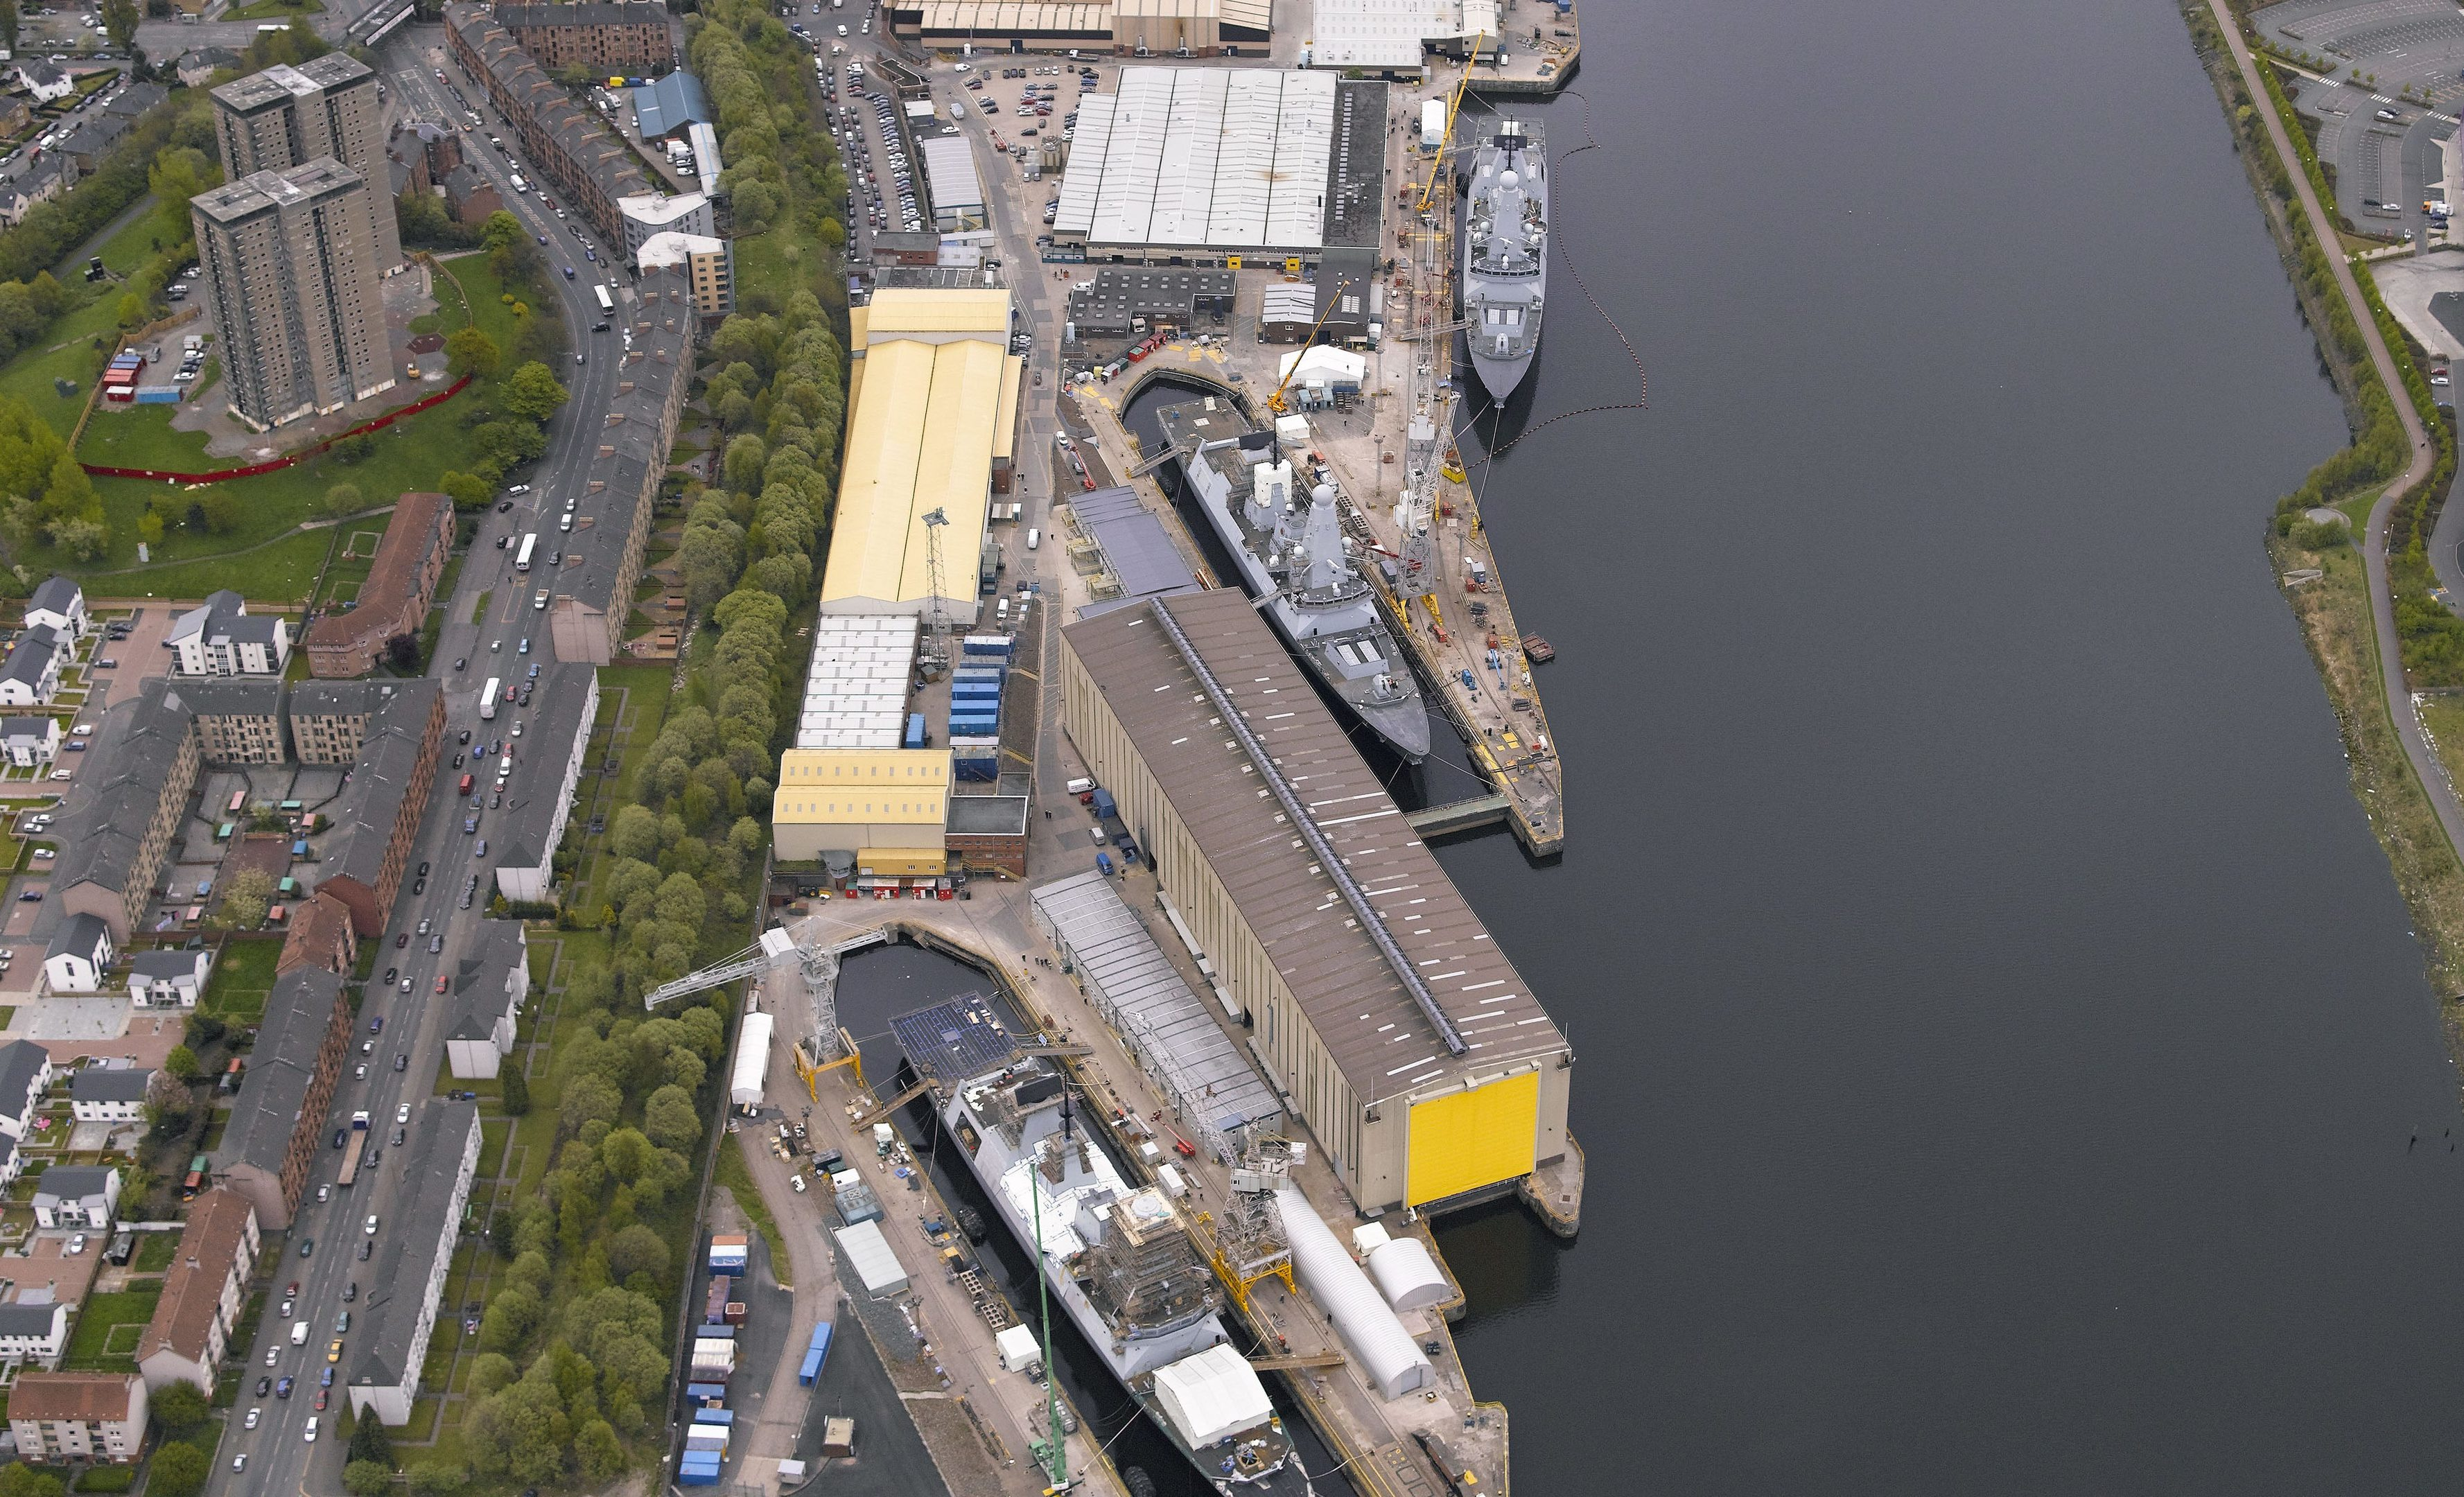 The shipyard is expected to see a huge rise in employment